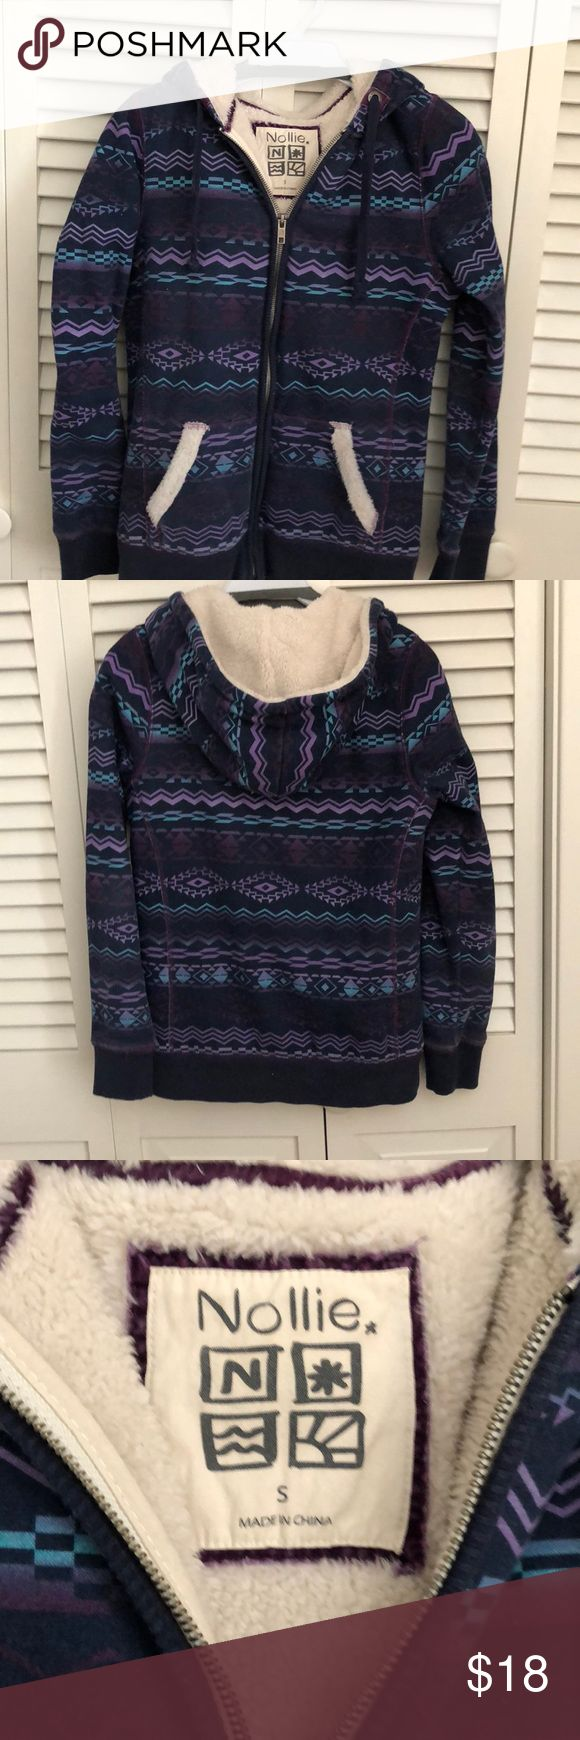 Ladies hoodie This is a blue printed fabric made by the foxy brand. It is Sherpa lined except sleeves are lined with cotton jersey . It is size s and runs small. So cute and warm and soft!! Great shape! nollie Tops Sweatshirts & Hoodies